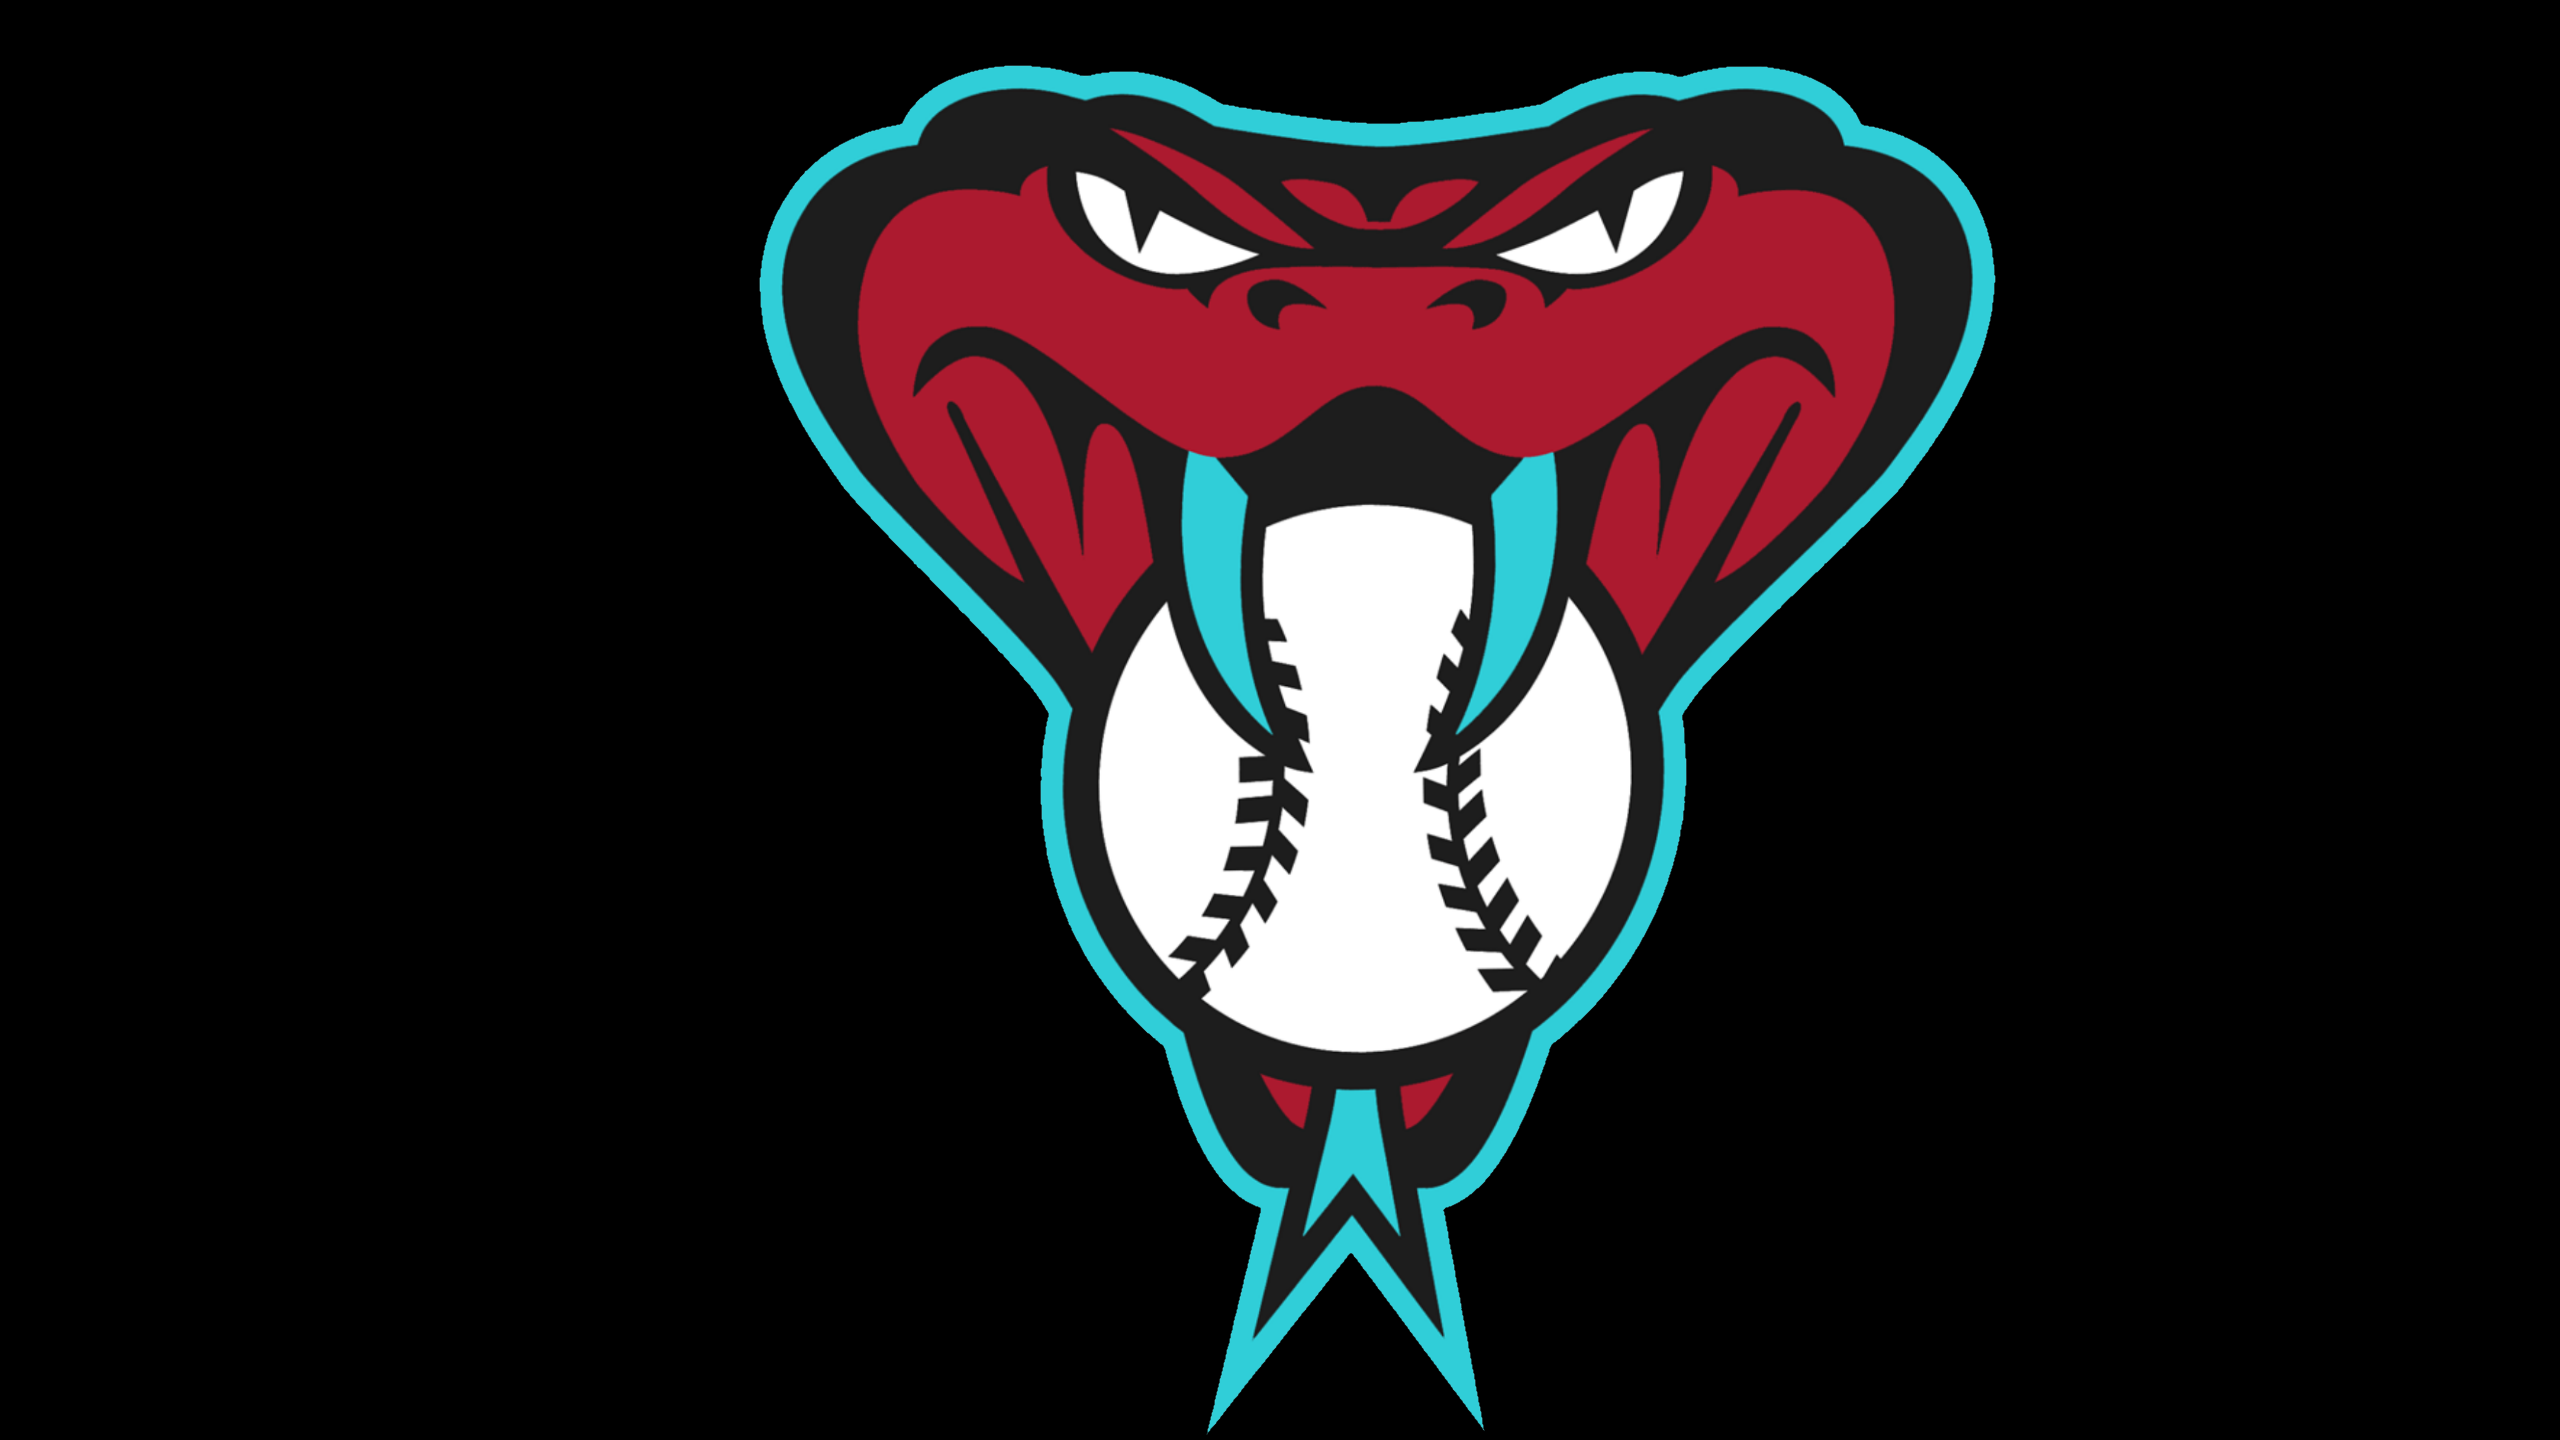 2560x1440 - Arizona Diamondbacks Wallpapers 4